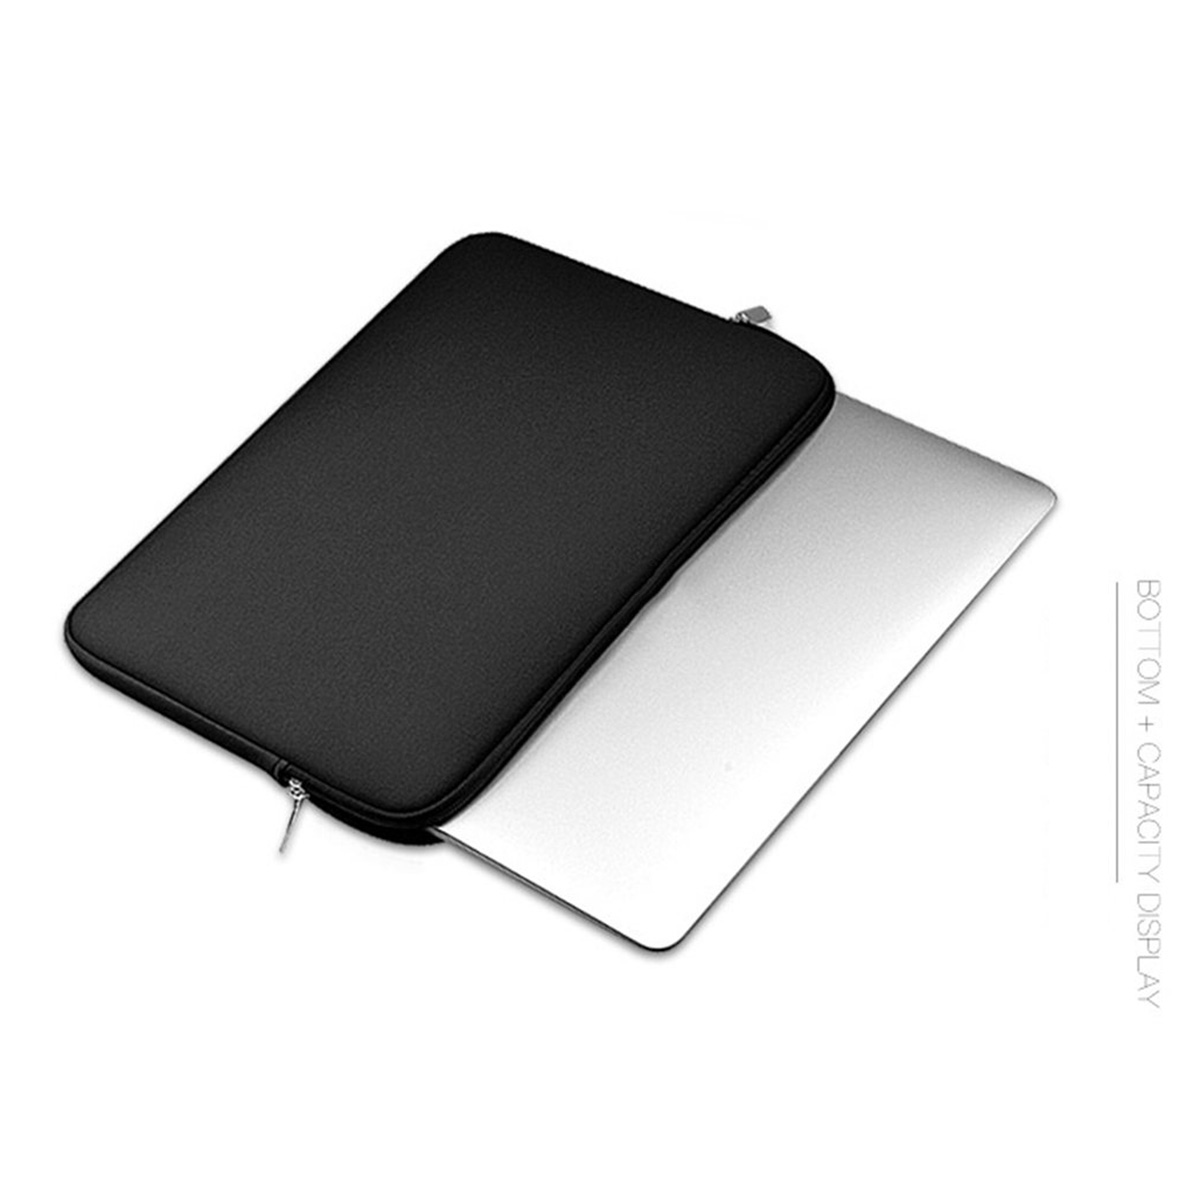 Laptop Sleeve 14 15.6 Inch Notebook Bag 13.3 For MacBook Air Pro 13 Case Laptop Bag 11 13 15 Inch Protective Case Computer Case